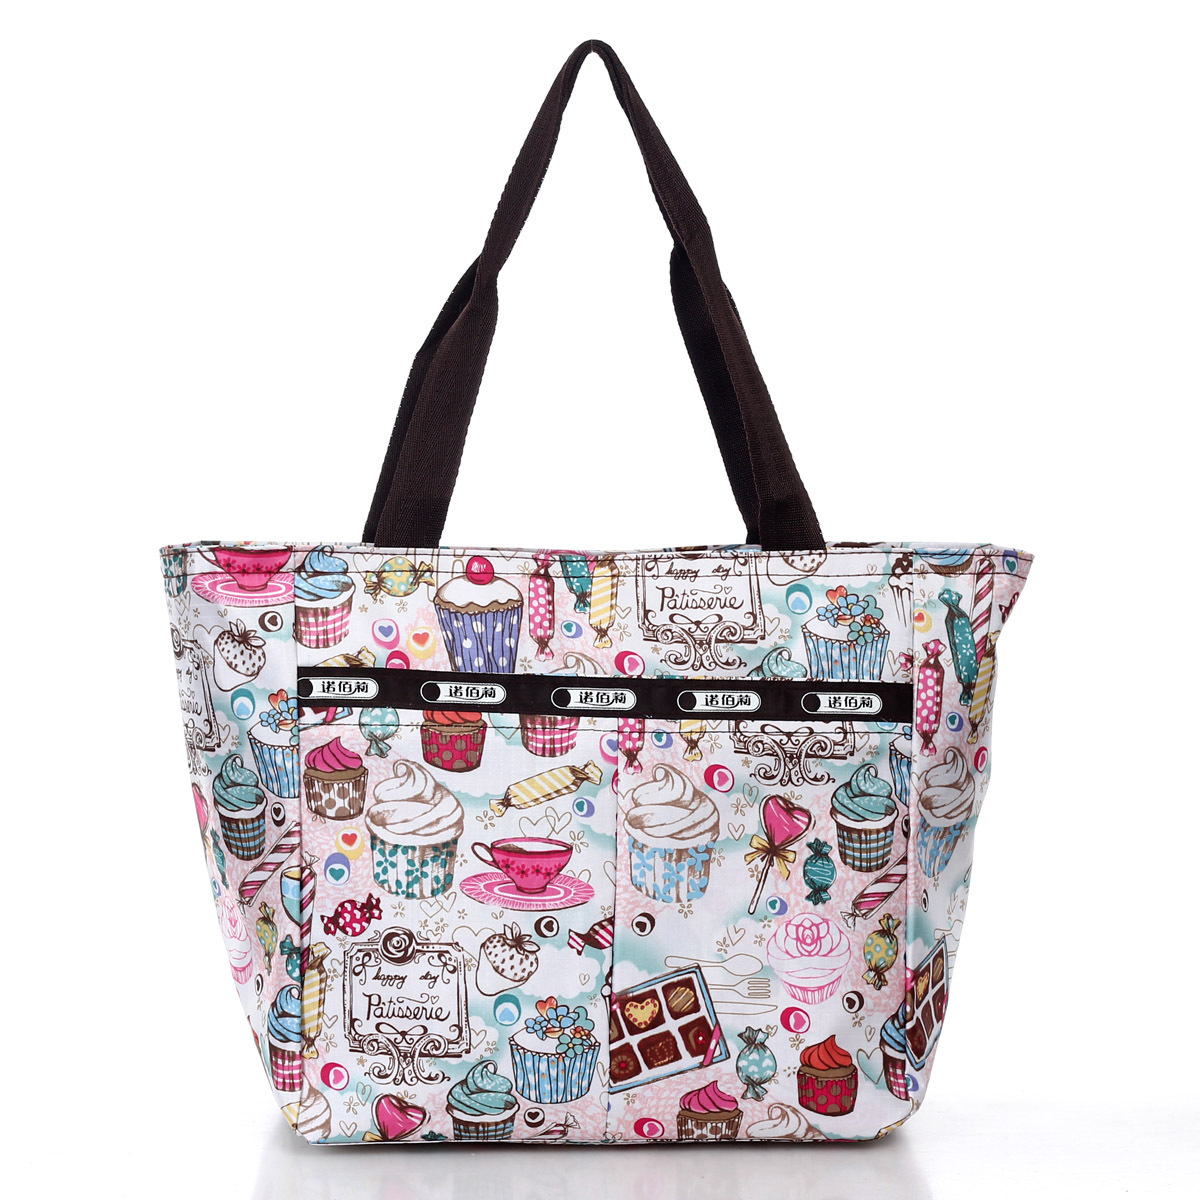 Hot sale 2014 New fashion womans Nylon Waterproof print handbag cartoon shoulder bag for female Gym bags Free shipping D2488(China (Mainland))